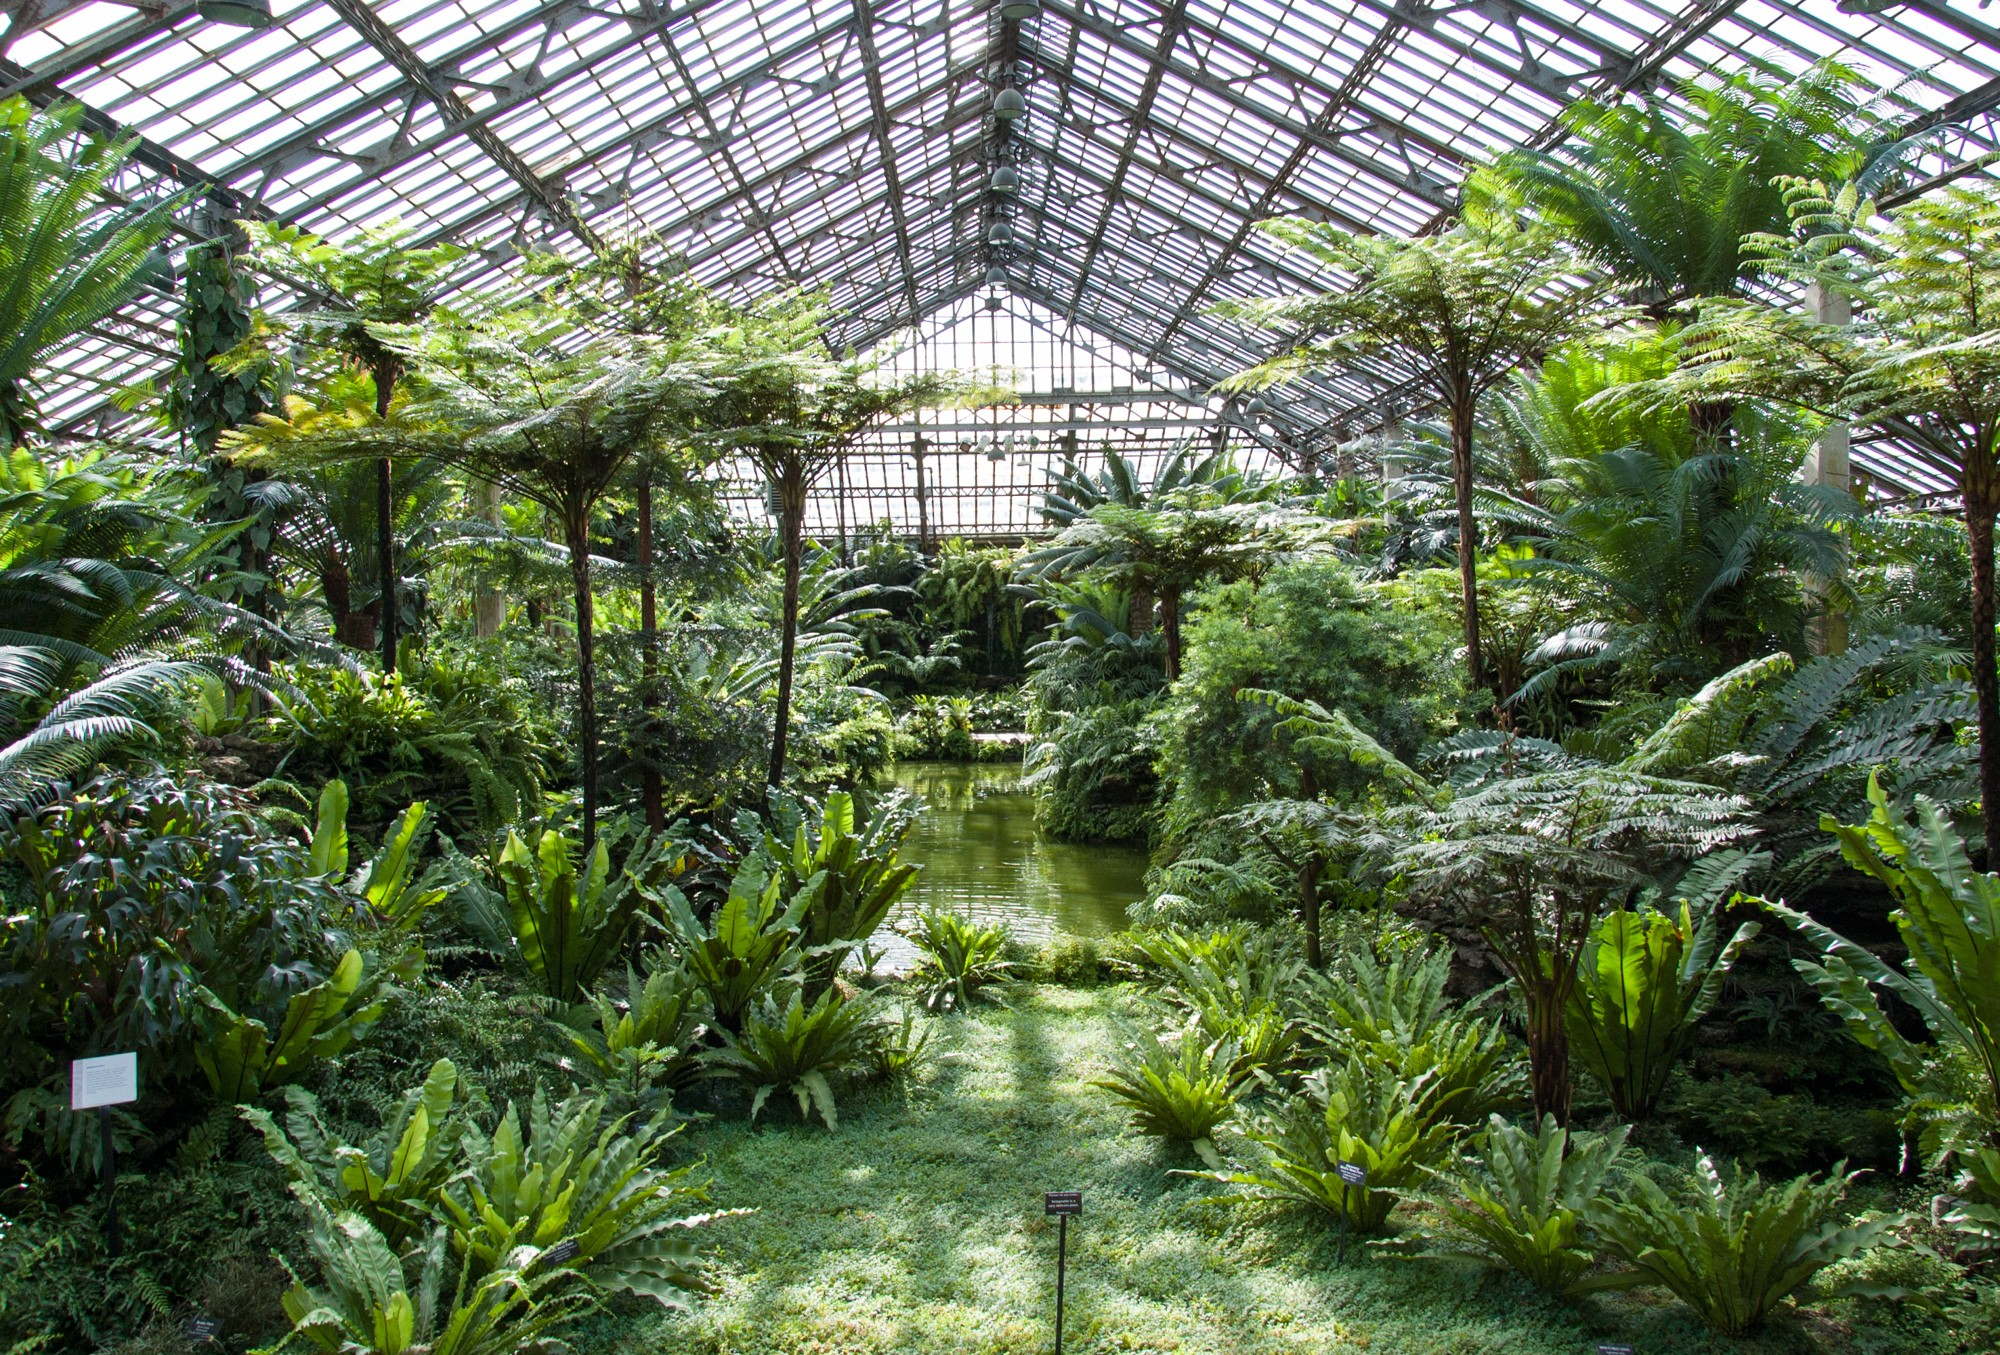 Crysis 3 Digital Deluxe Upgrade besides Spotlight On Pretty Peonies further A Visit To Monkey Bar At Bikini Berlin furthermore Zhang Ziyi To Be A Fixture Of Legendarys Monsterverse Beginning With Godzilla King Of The Monsters in addition Wandering Jew Plant. on house plants